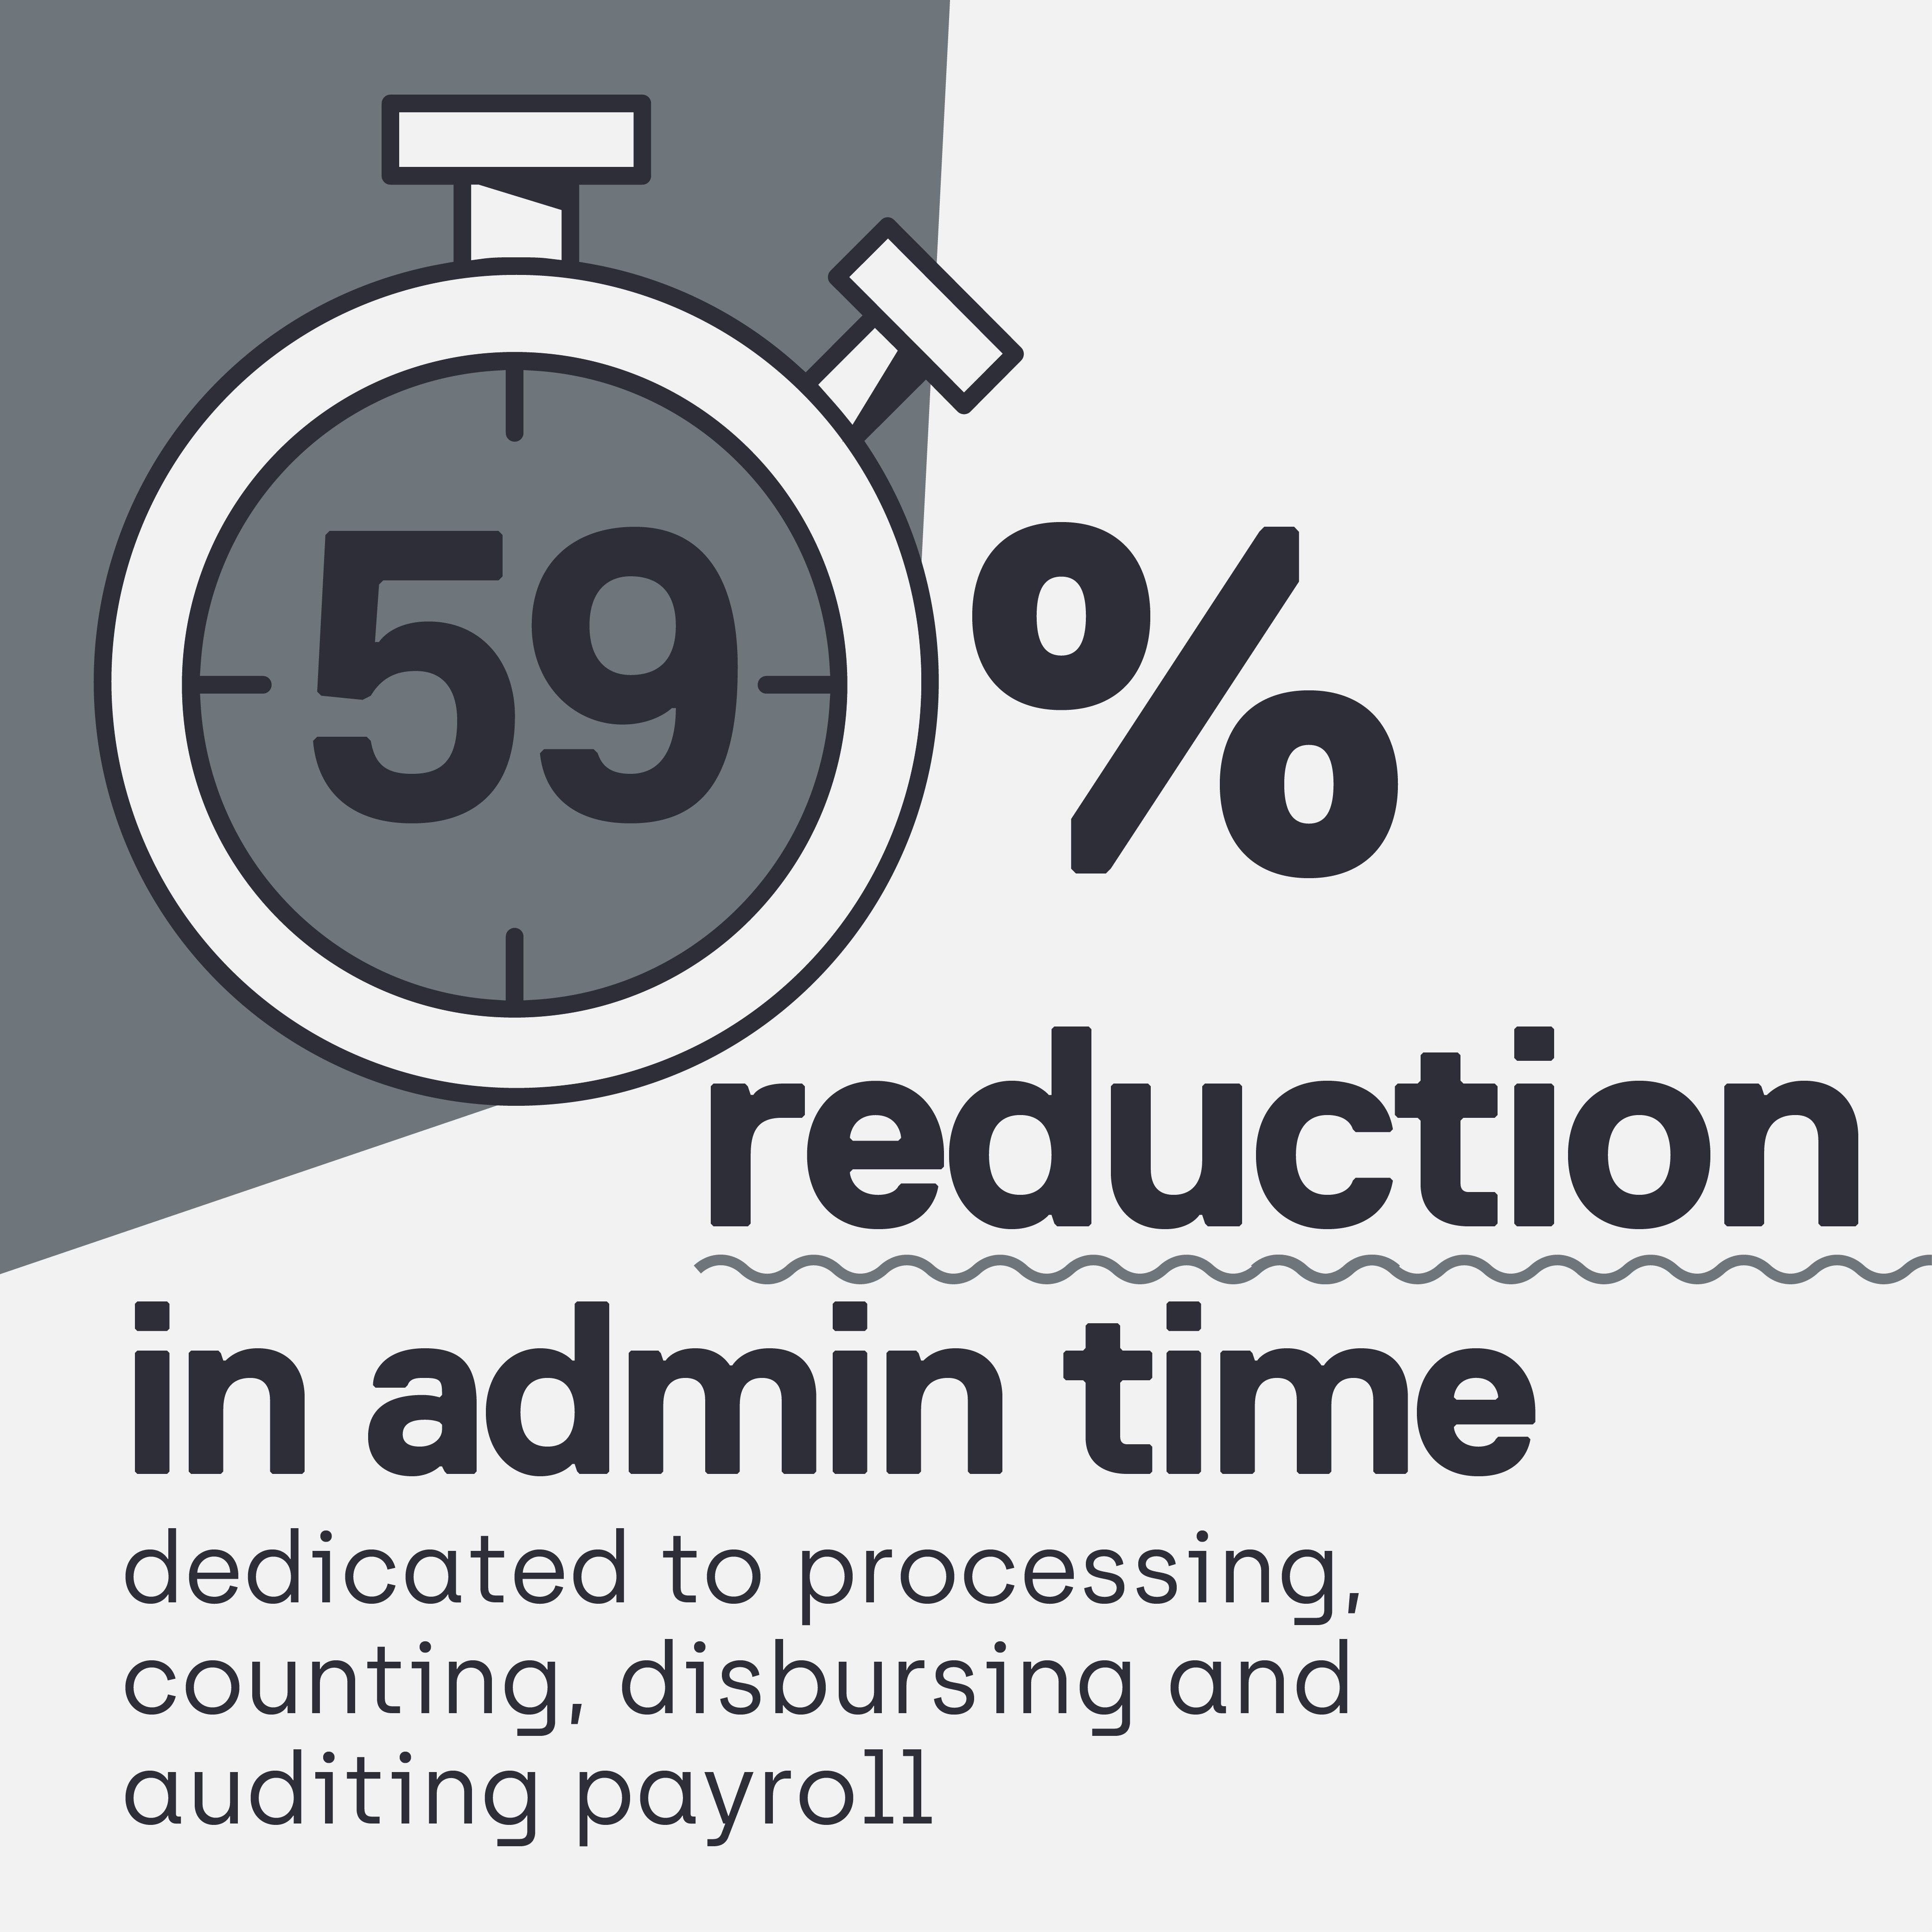 Infographic: 59% reduction in admin time, dedicated to processing, counting, disbursing, and auditing payroll